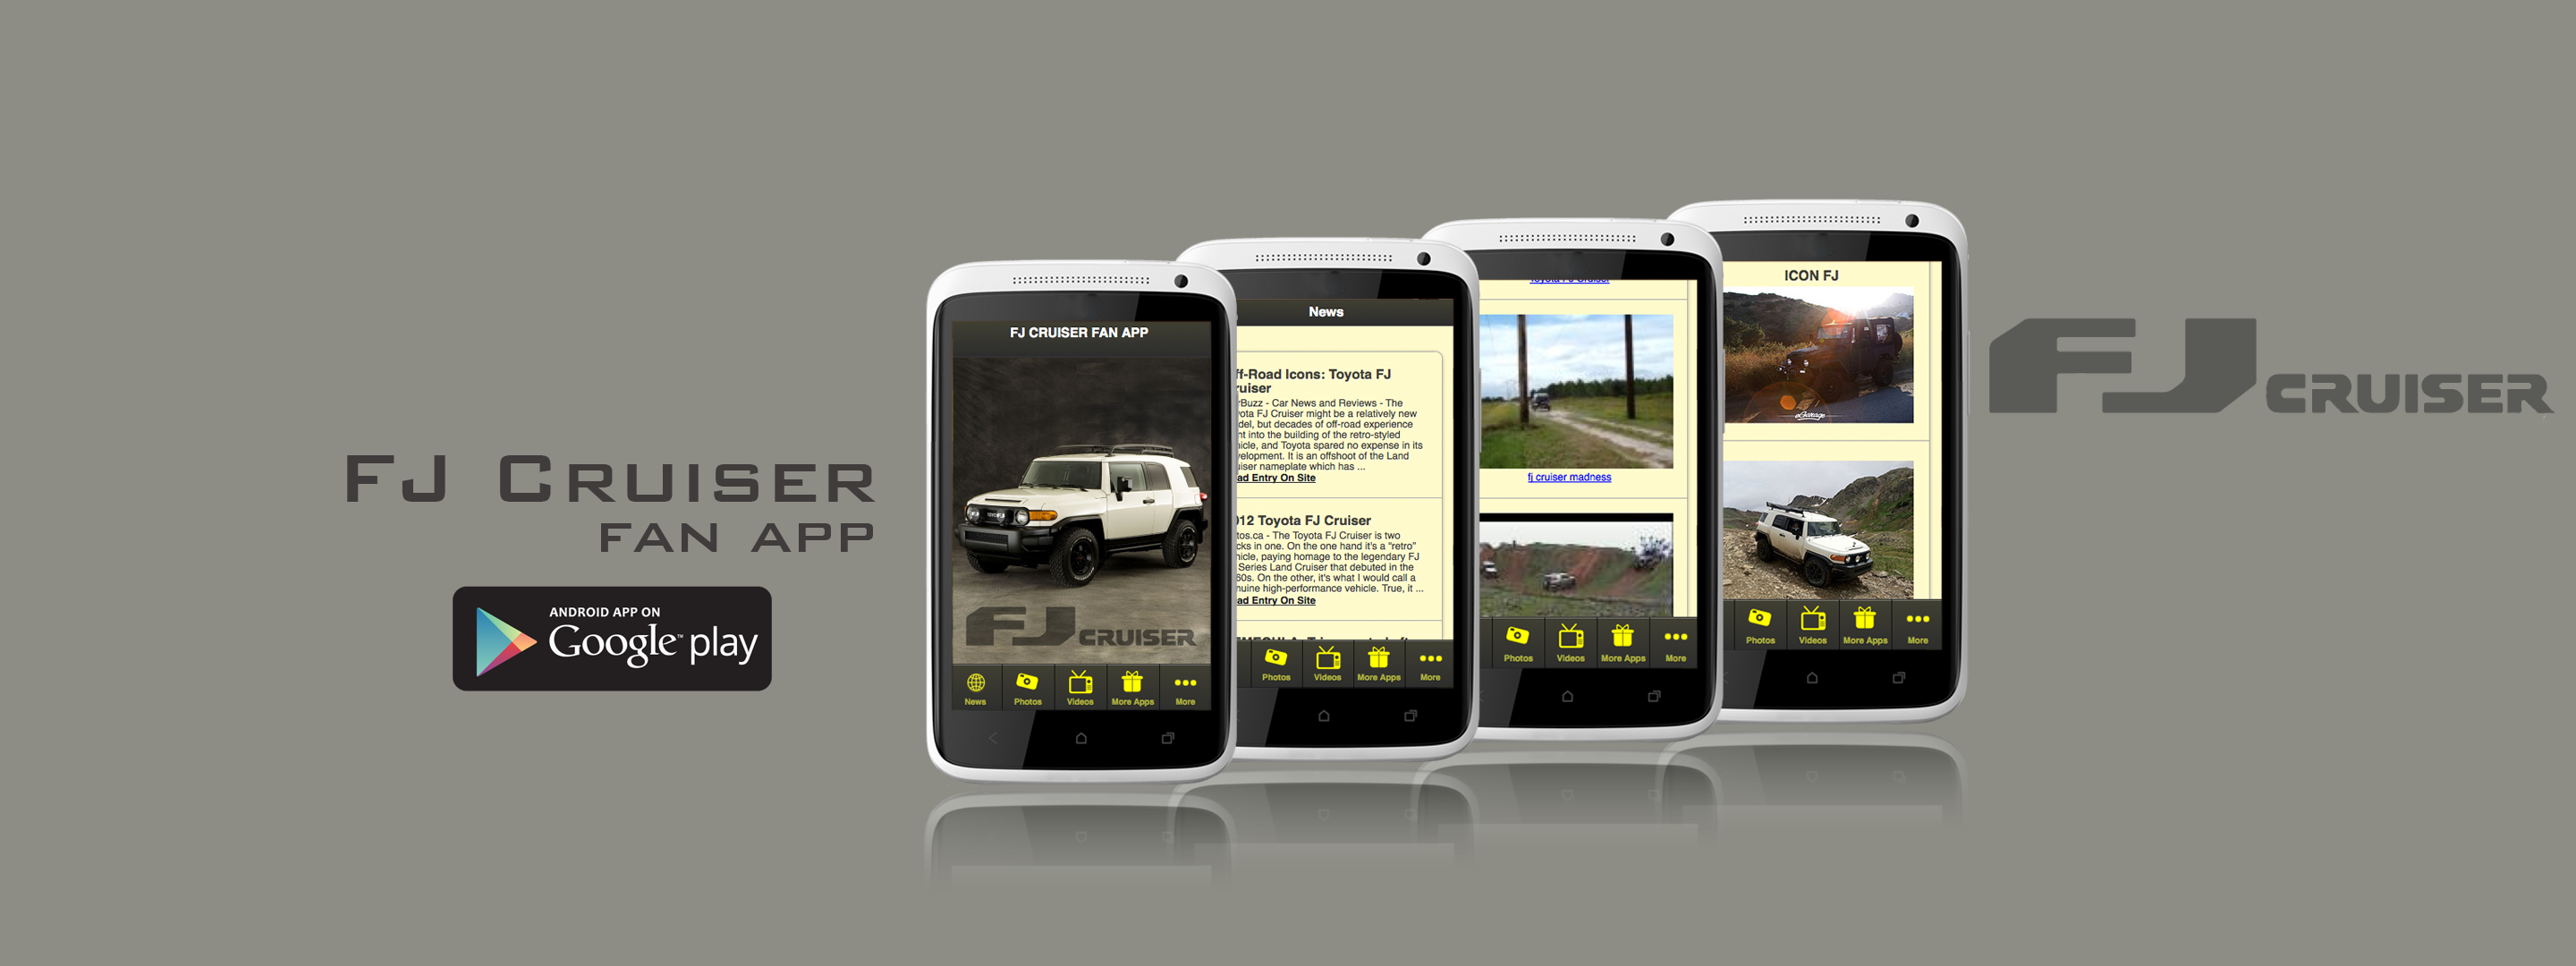 FJ Cruiser Fan App Has Been Launched